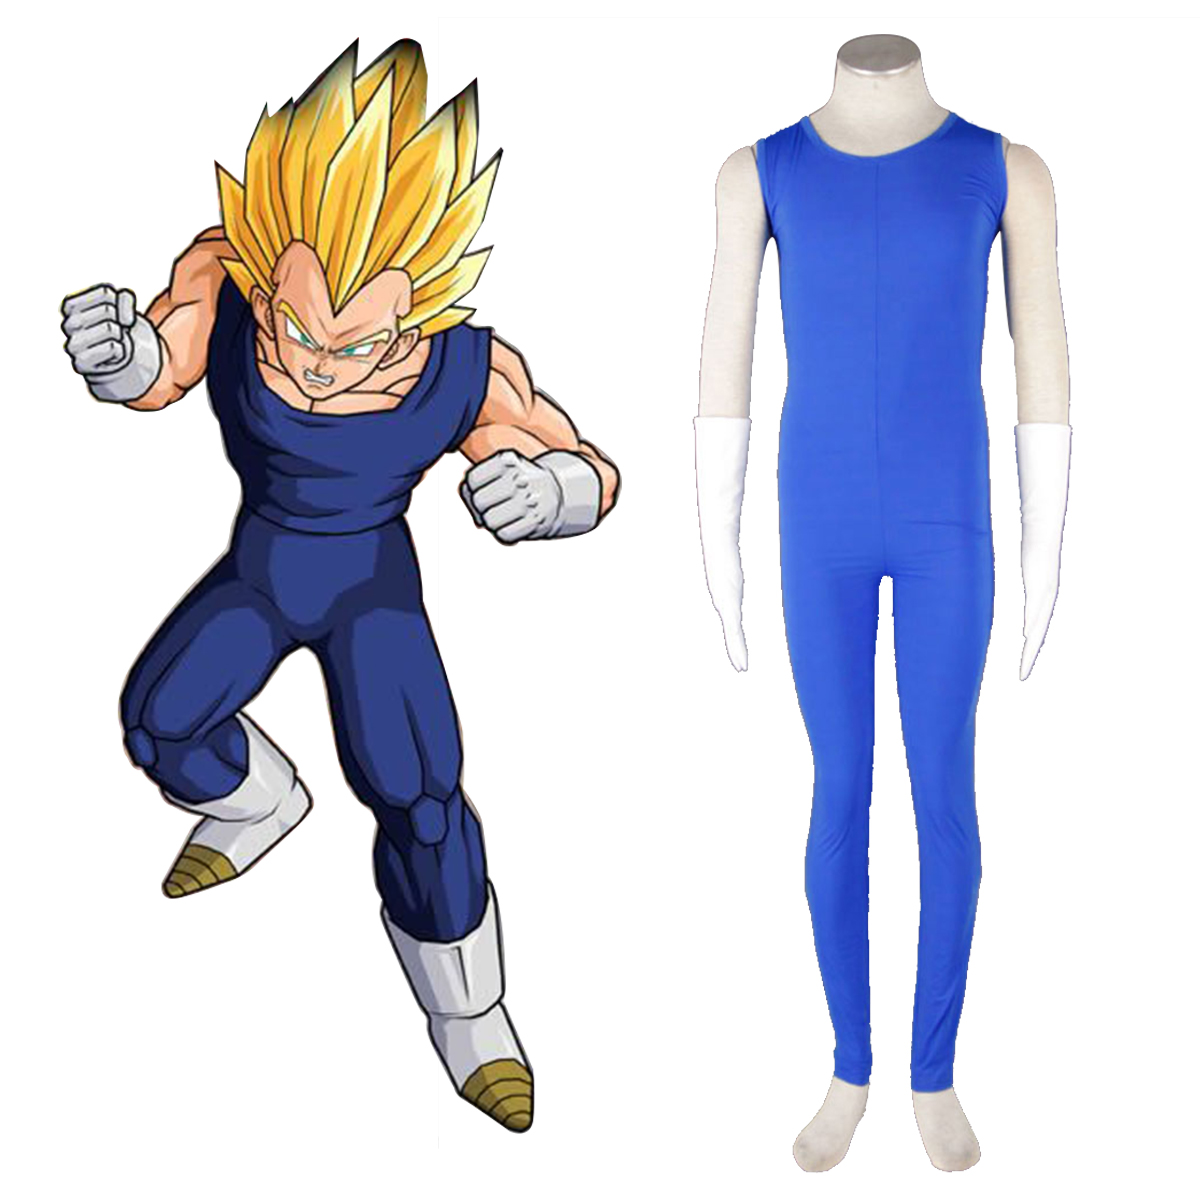 Dragon Ball Vegeta 2 Anime Cosplay Costumes Outfit